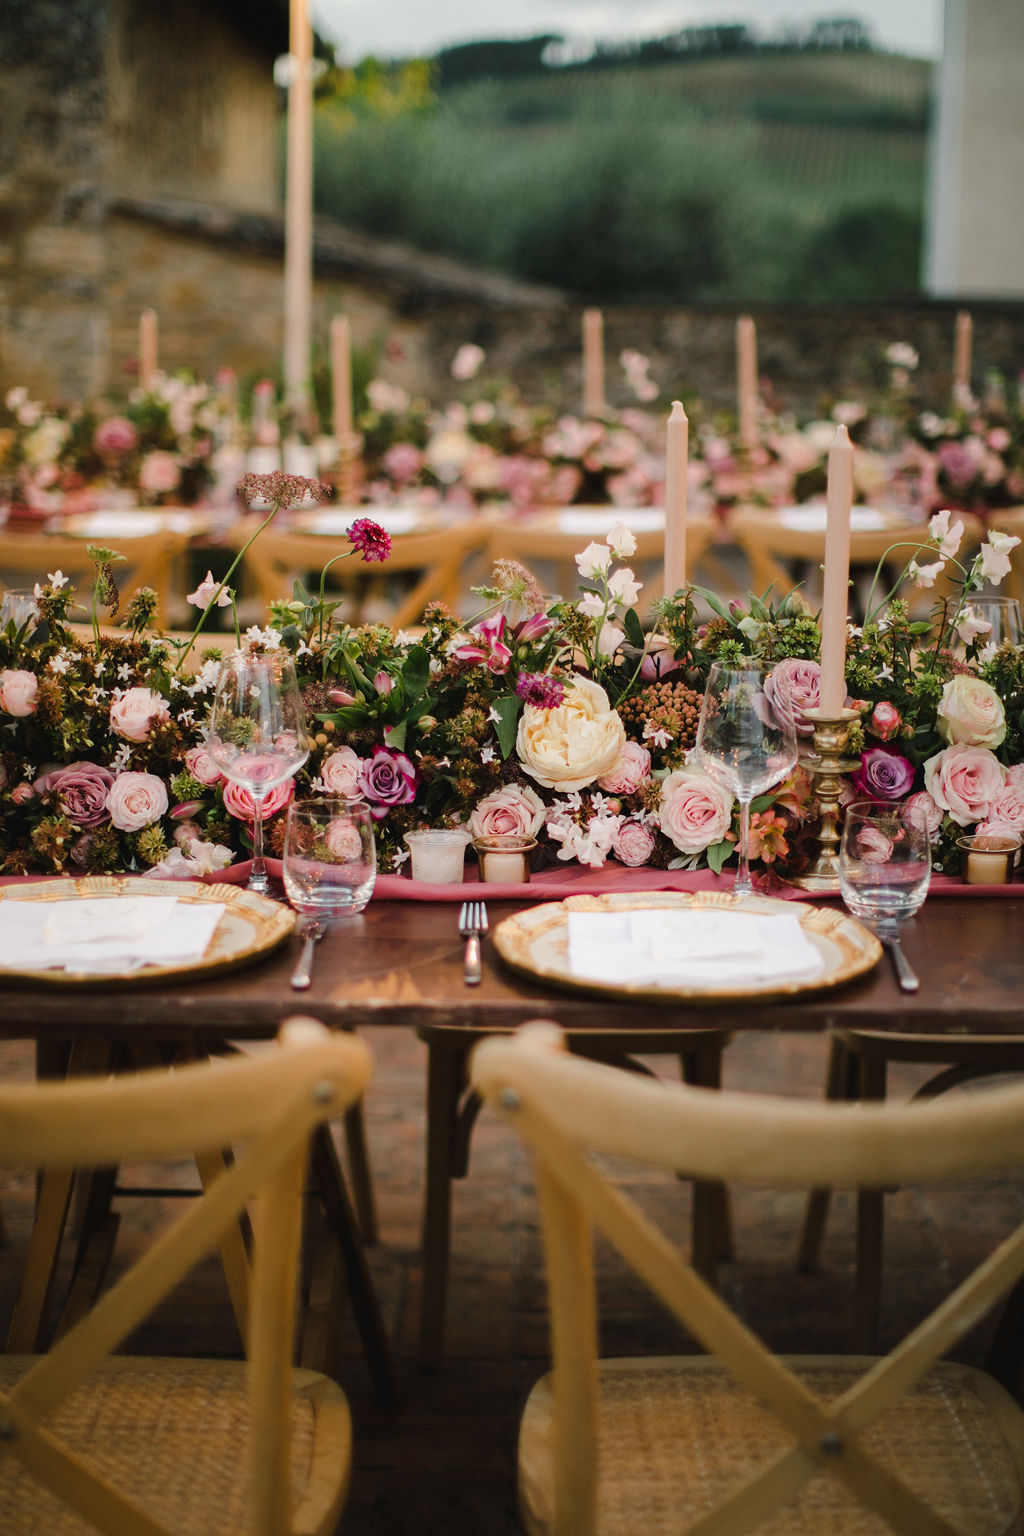 Rustic Chic Wedding in a Medieval Tuscan Hamlet near San Gimignano - ITALIAN WEDDINGS BY NATALIA